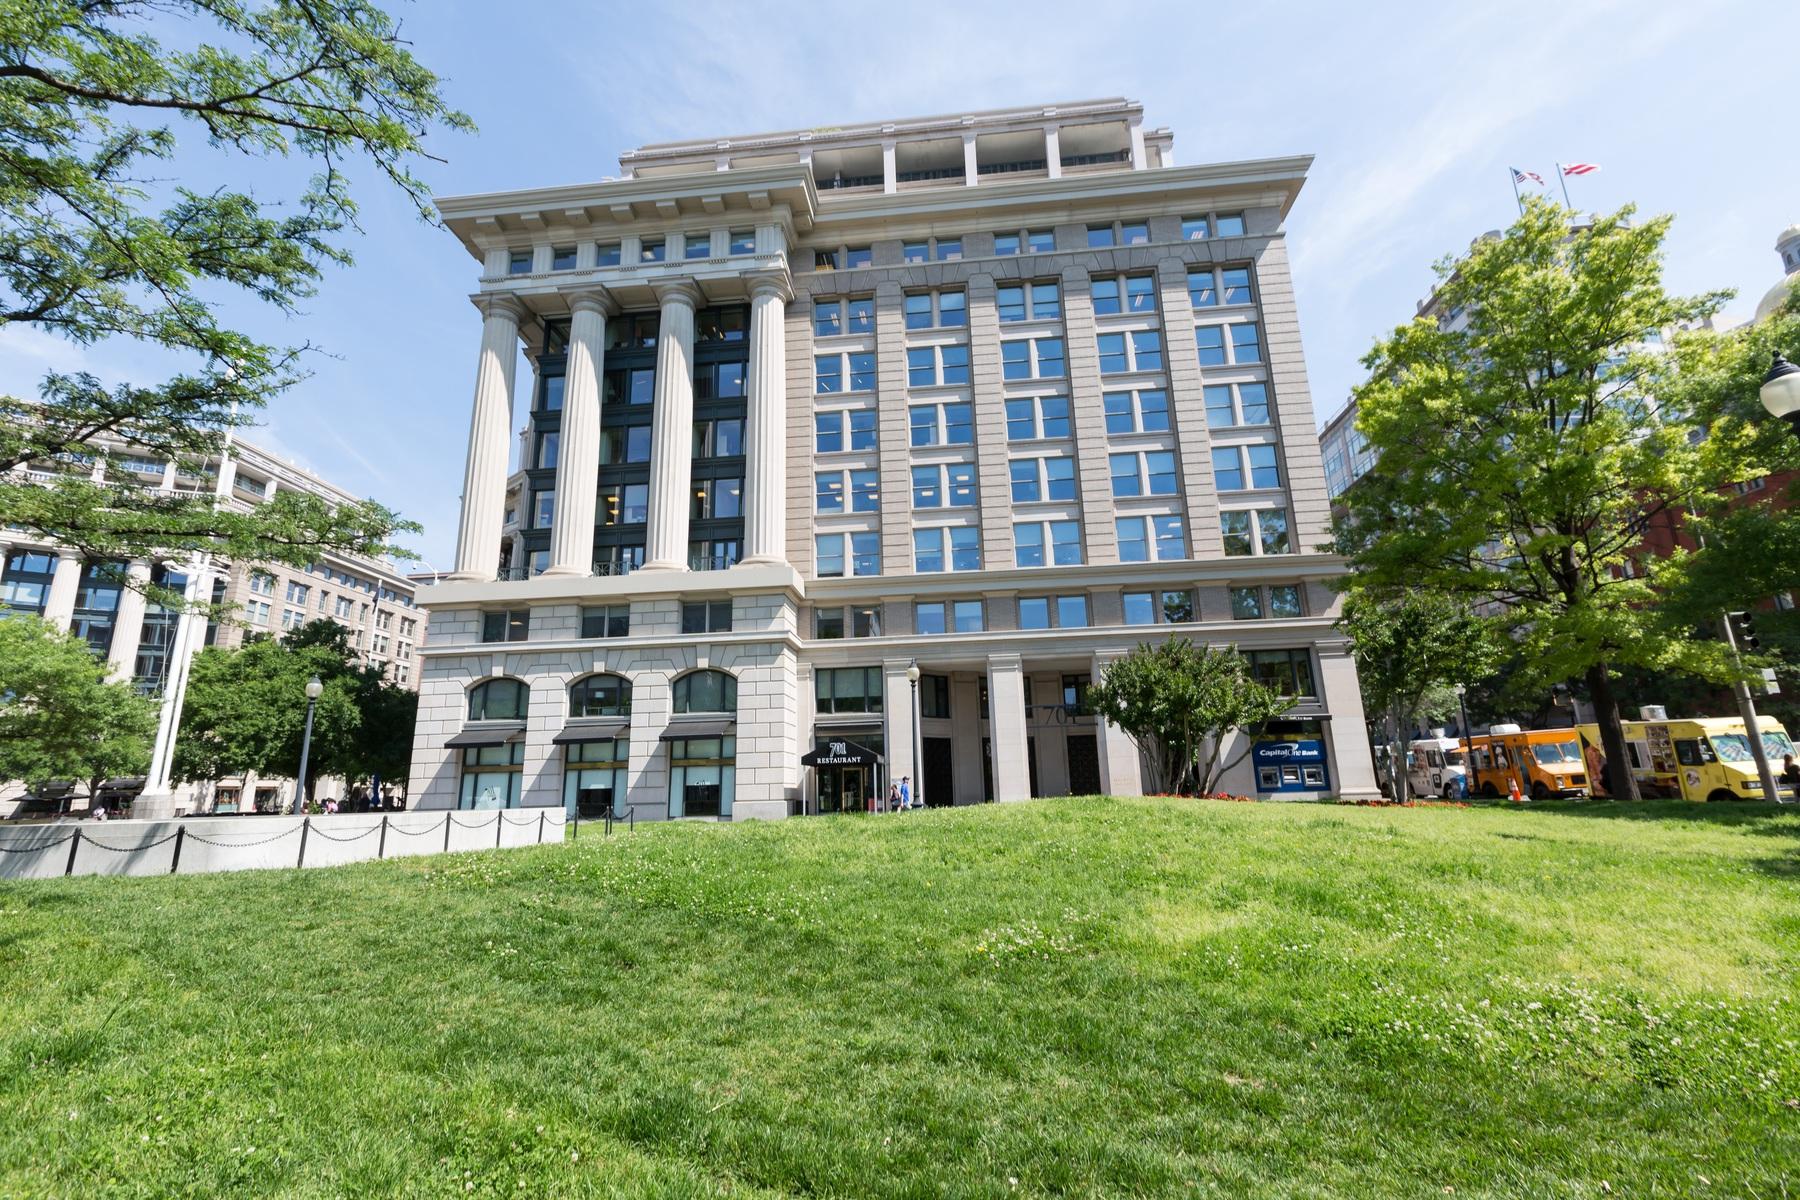 sales property at 701 Pennsylvania Avenue Nw 1012, Washington